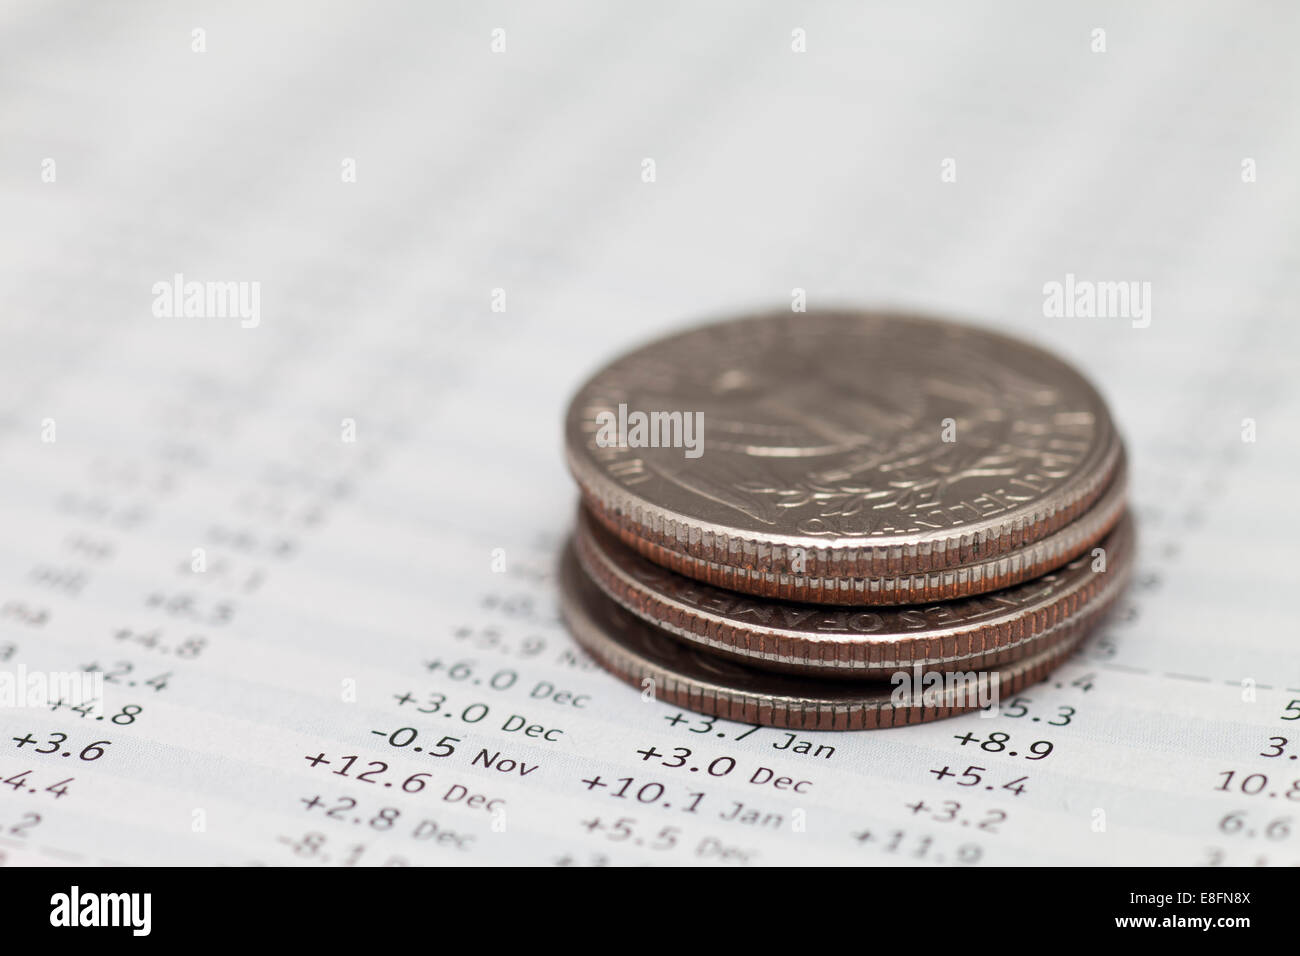 US coins on stock market data - Stock Image